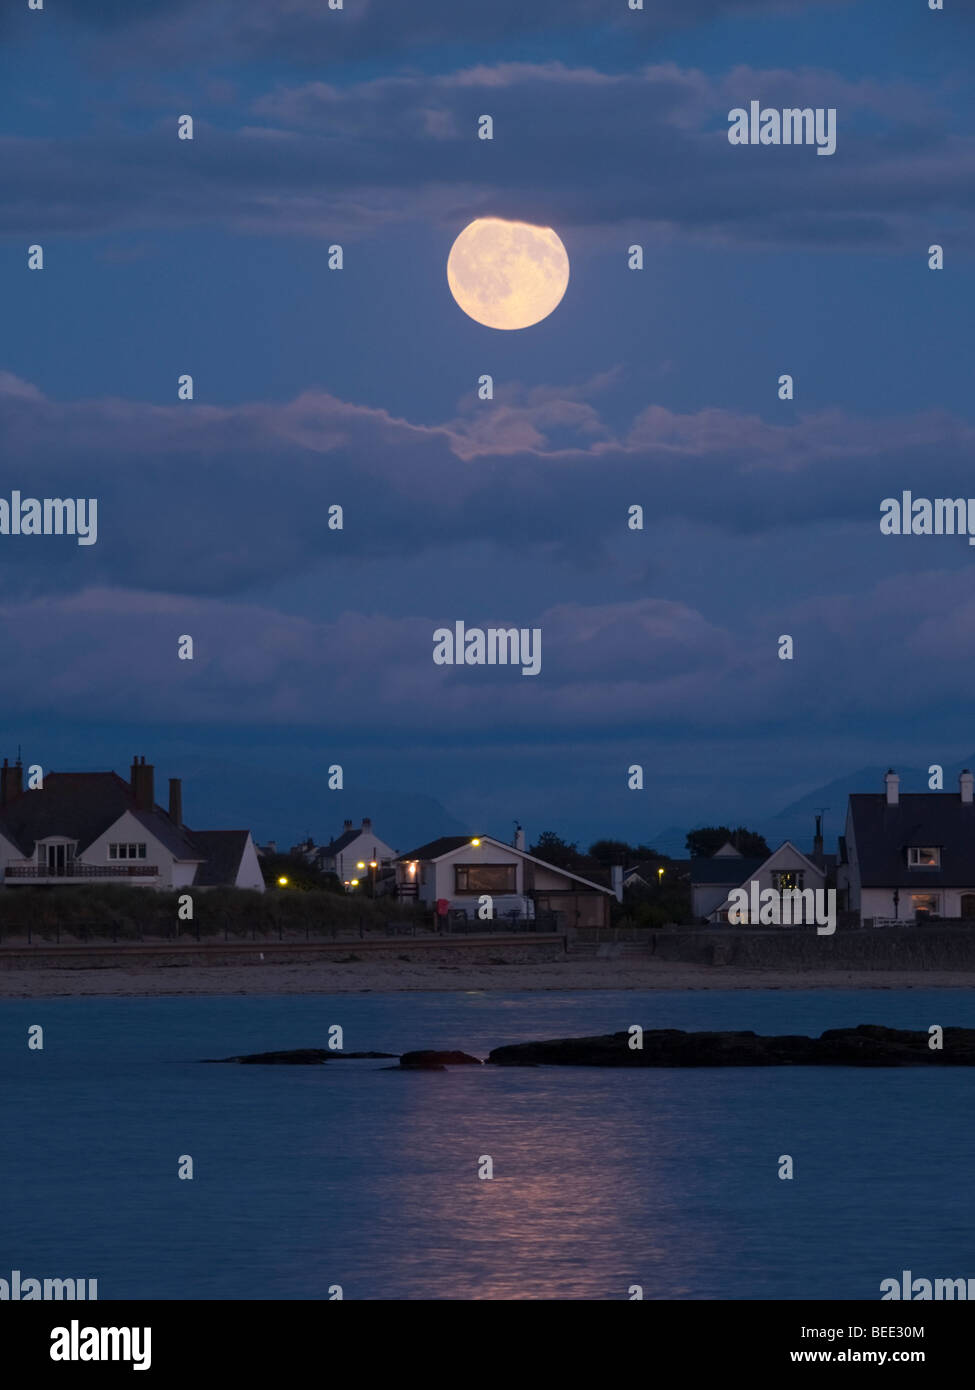 Trearddur, Anglesey, North Wales, UK. MOONRISE over TREARDDUR BAY with the full moon reflecting off the sea at dusk. - Stock Image